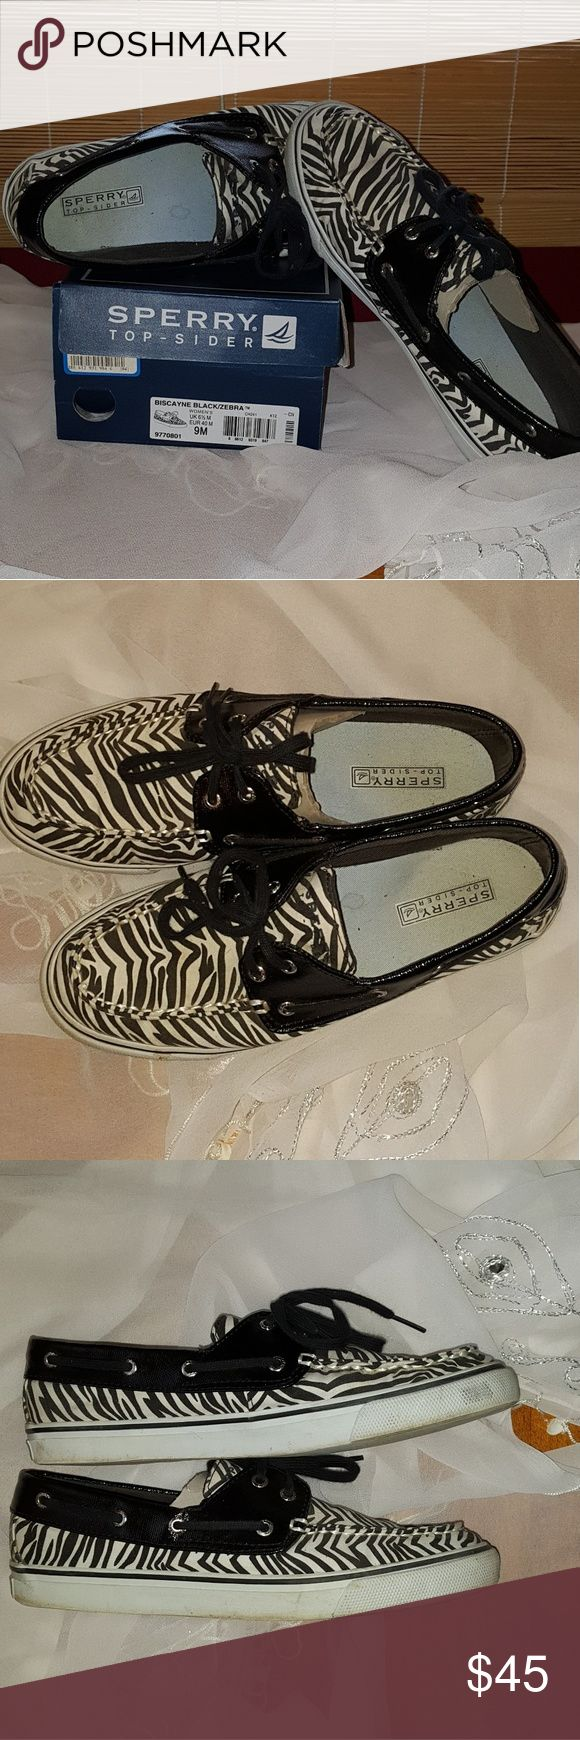 """Sperry top siders Great Ladies sperry topsiders """"Biscayne"""" black stylish zebra print, size 9. Preowned in box like new condition. Sperry Top-Sider Shoes Flats & Loafers"""